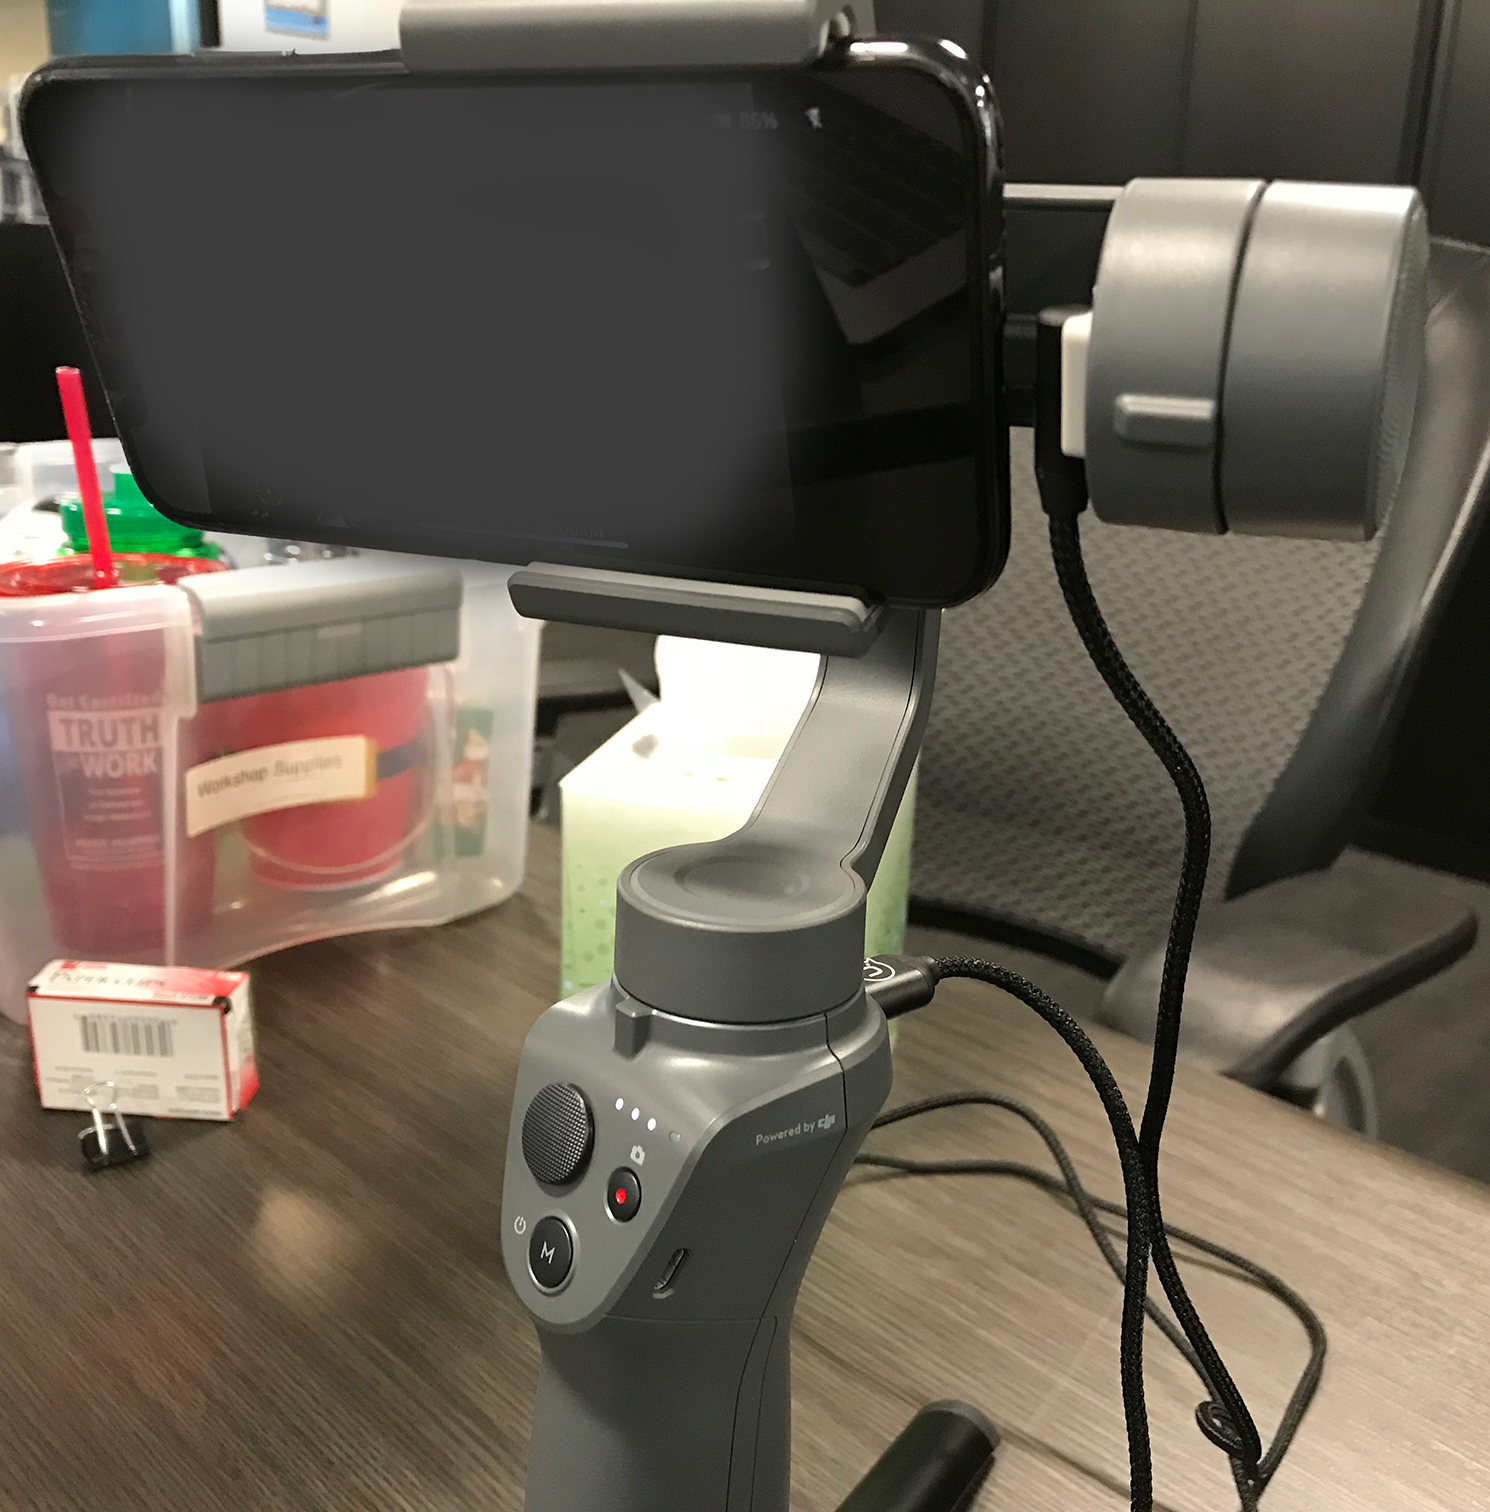 sale retailer f9239 053df OSMO 2 and iPhone X don't work well together | DJI FORUM